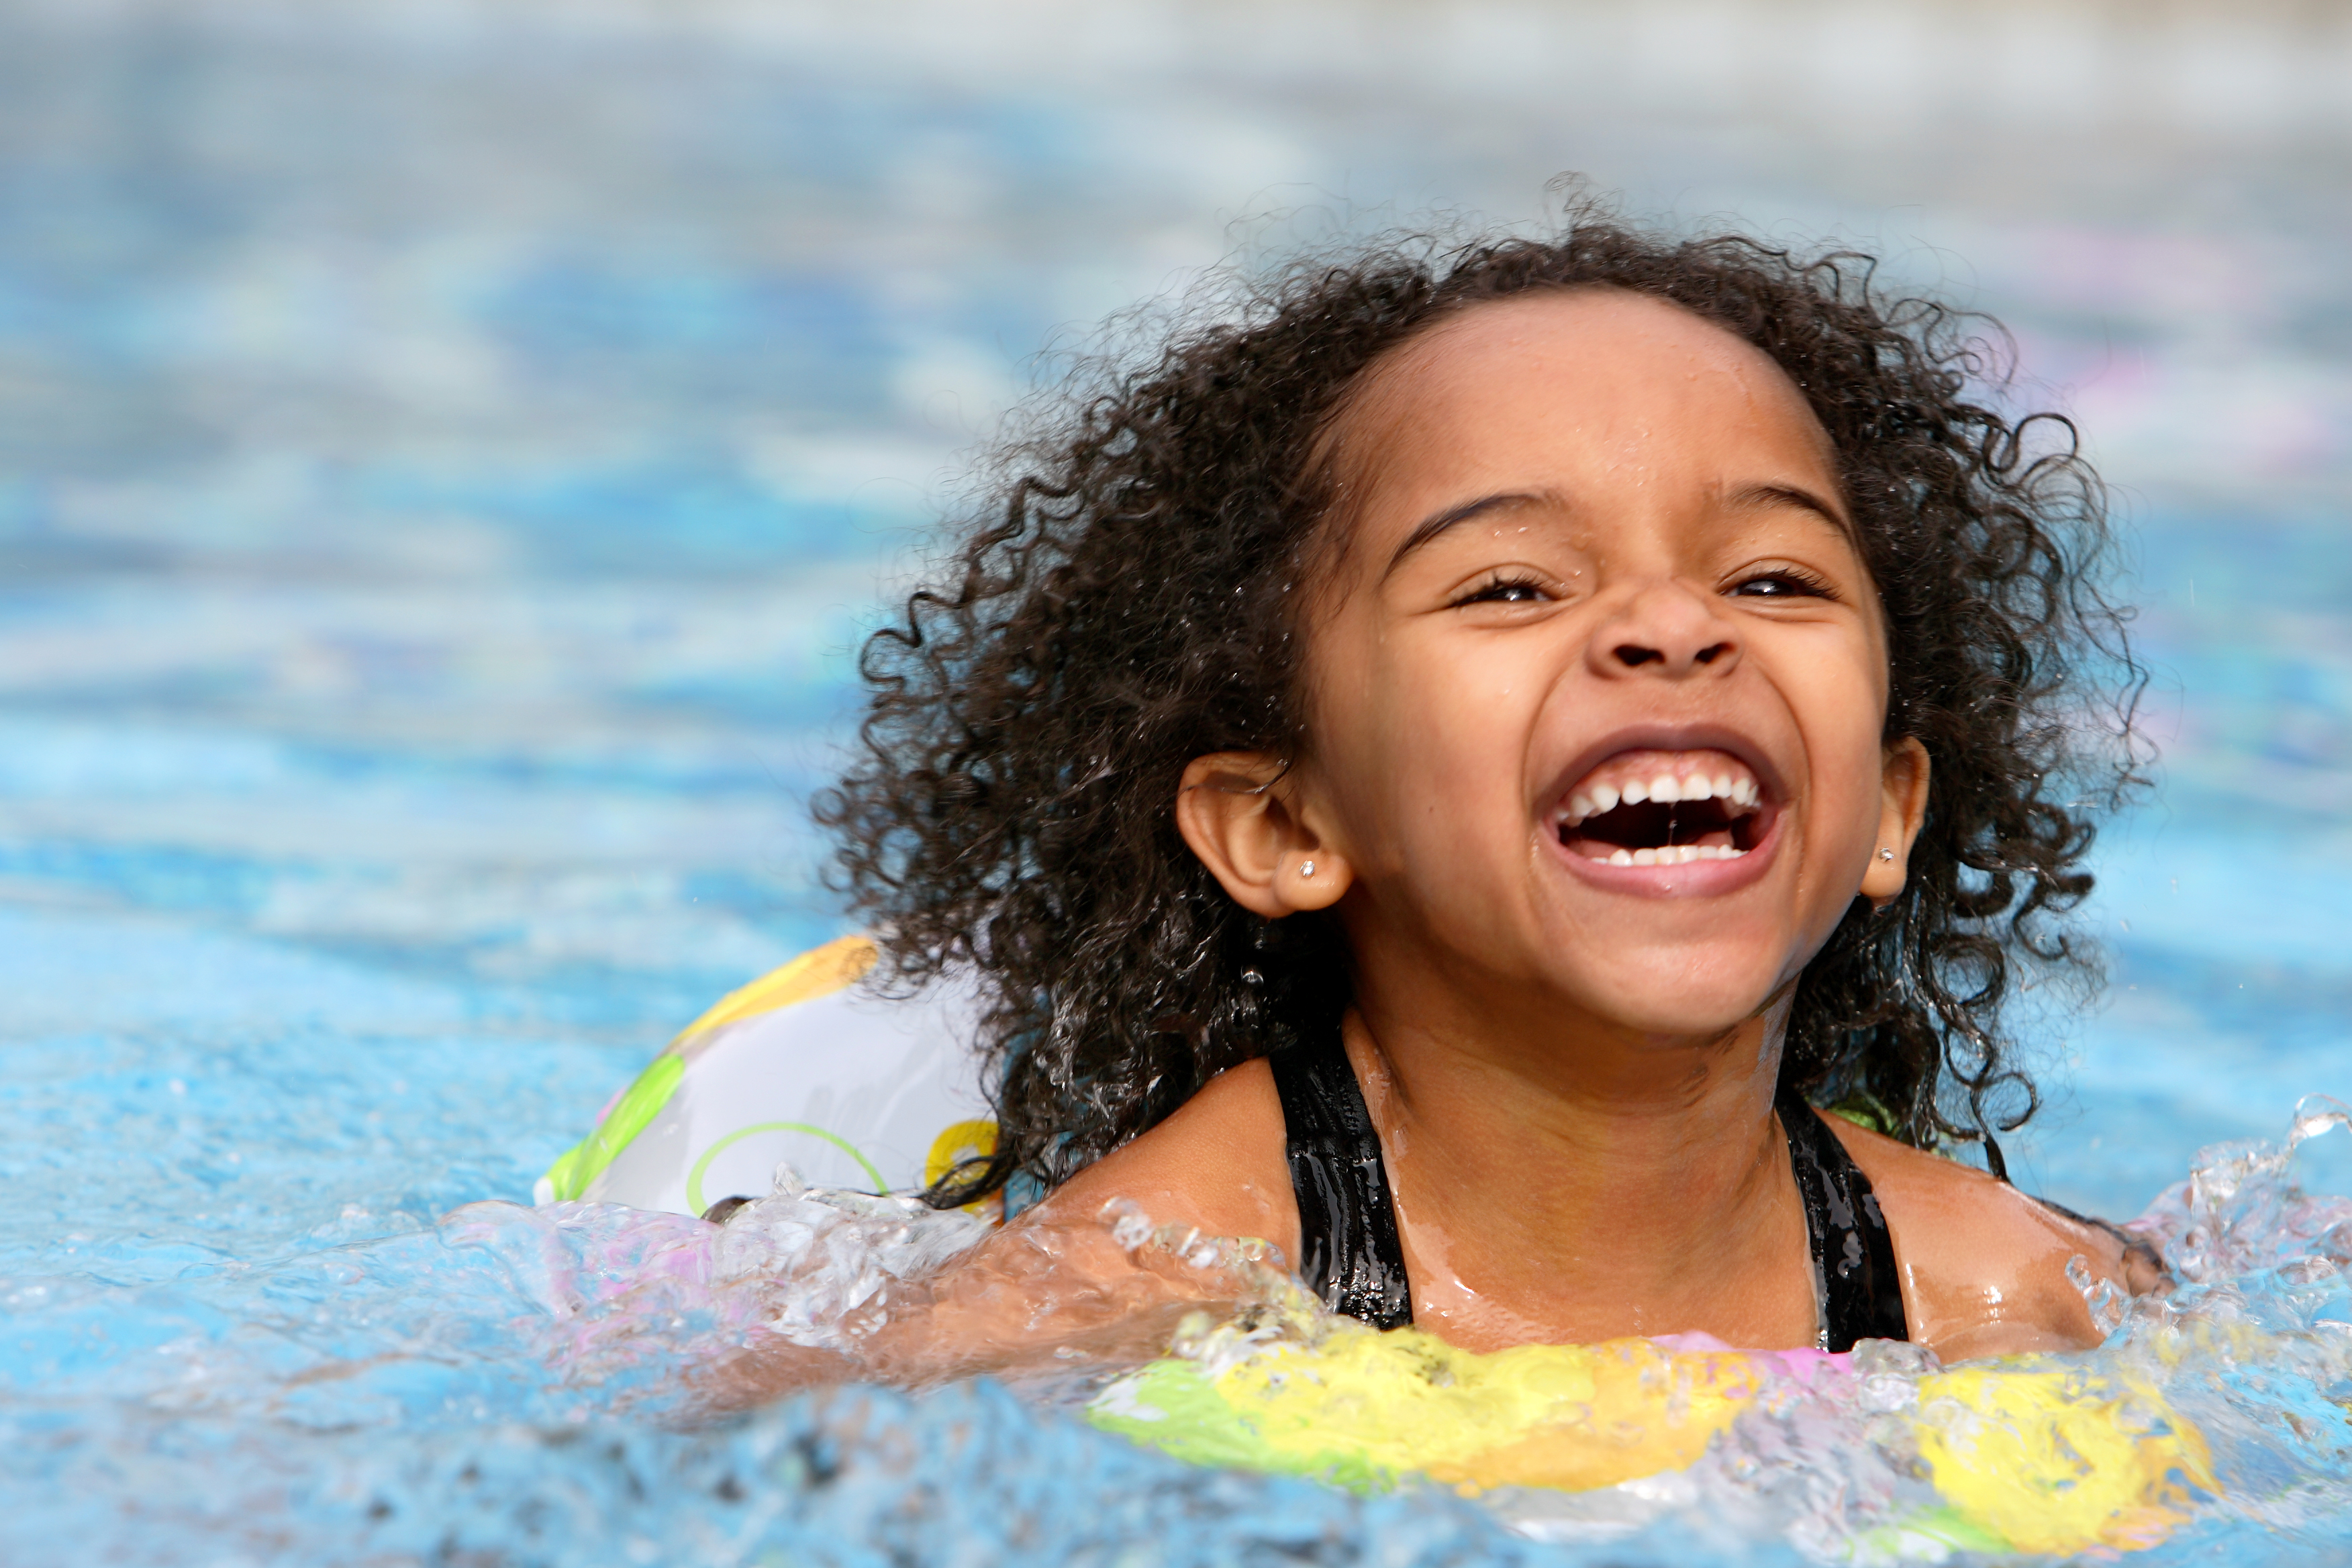 Little girl happily swimming.